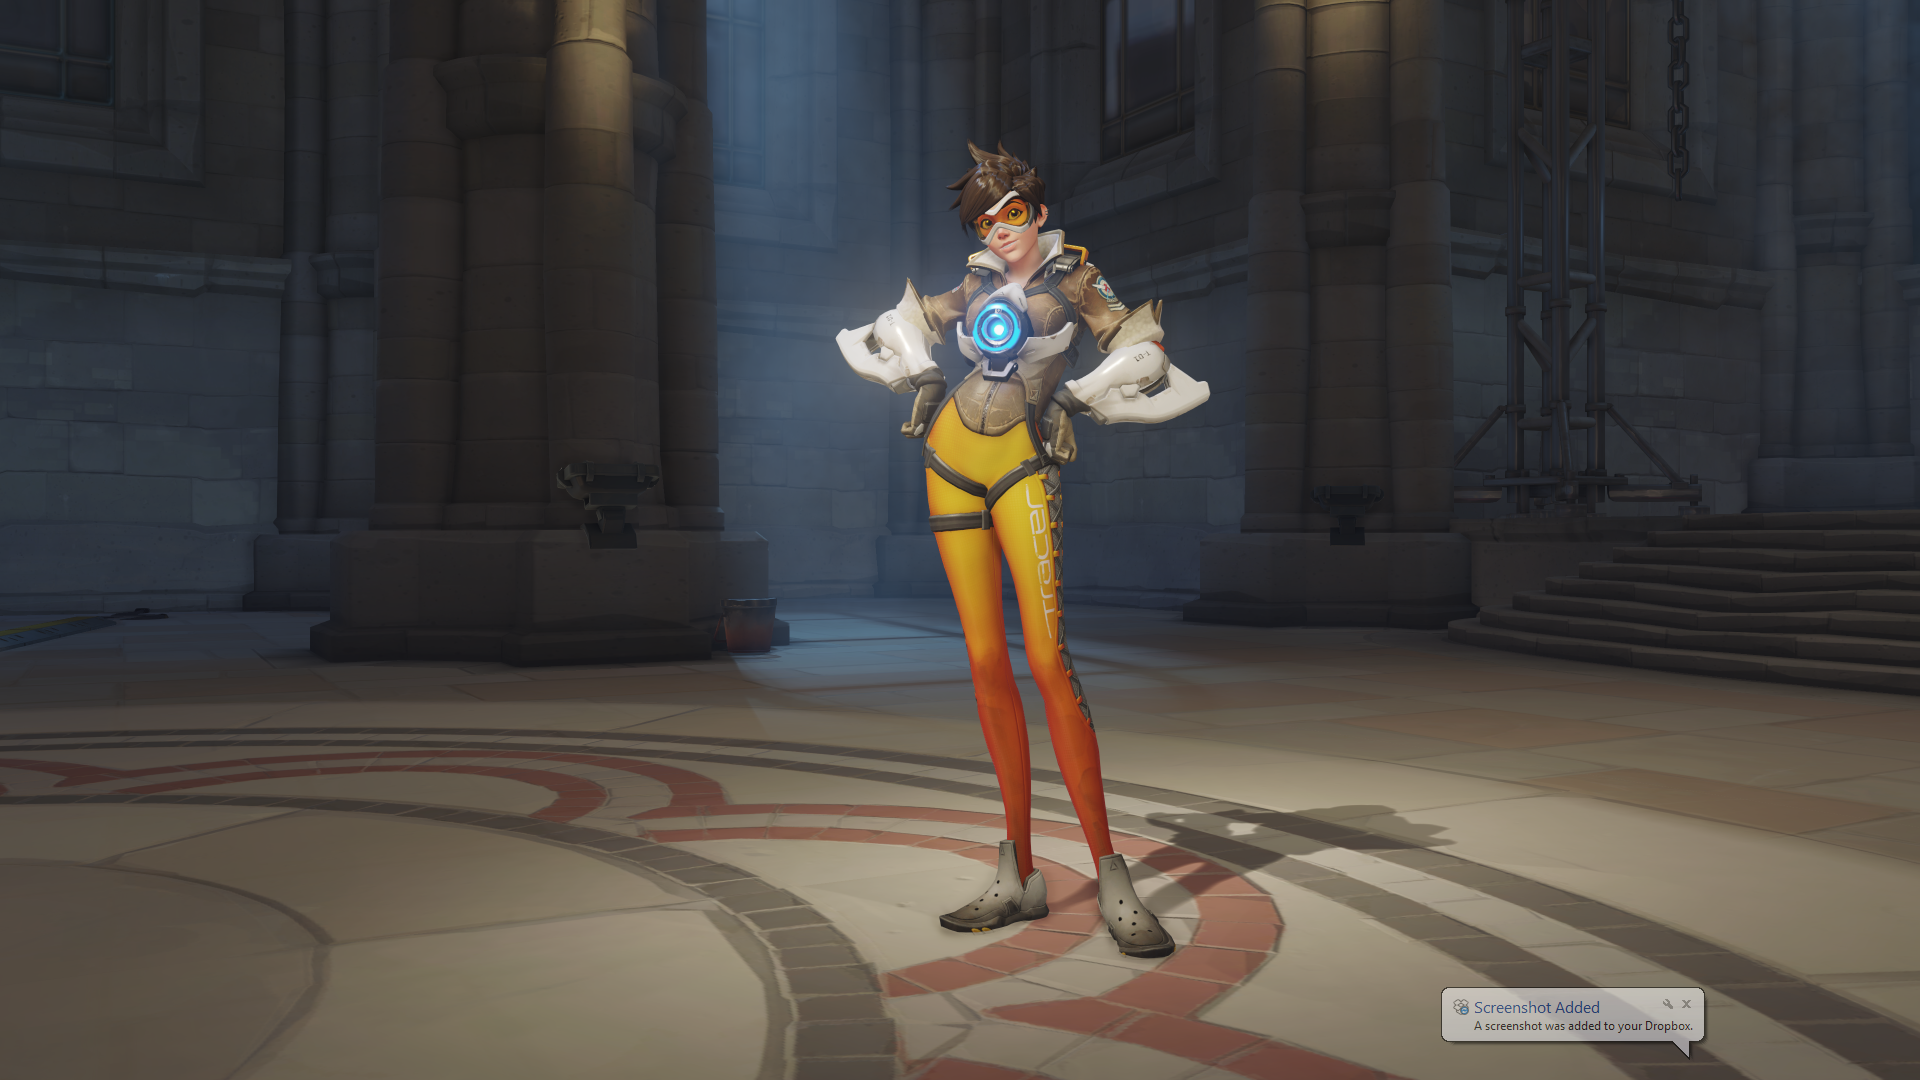 Image mei portrait png overwatch wiki fandom powered by wikia - Tracer Classic Png